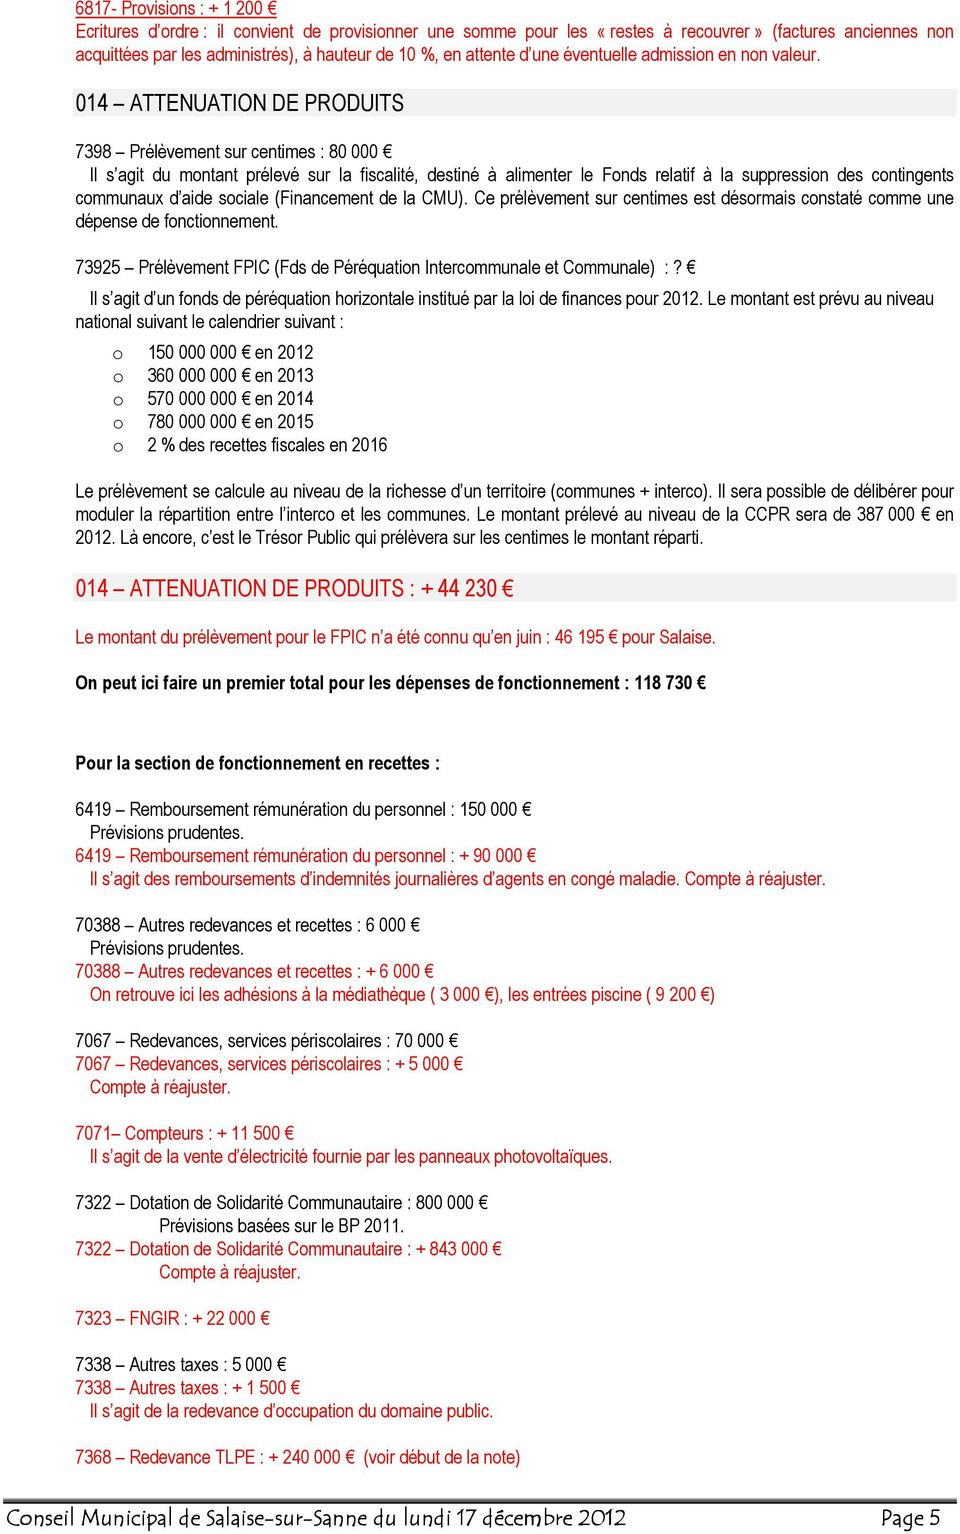 014 ATTENUATION DE PRODUITS 7398 Prélèvement sur centimes : 80 000 Il s agit du montant prélevé sur la fiscalité, destiné à alimenter le Fonds relatif à la suppression des contingents communaux d